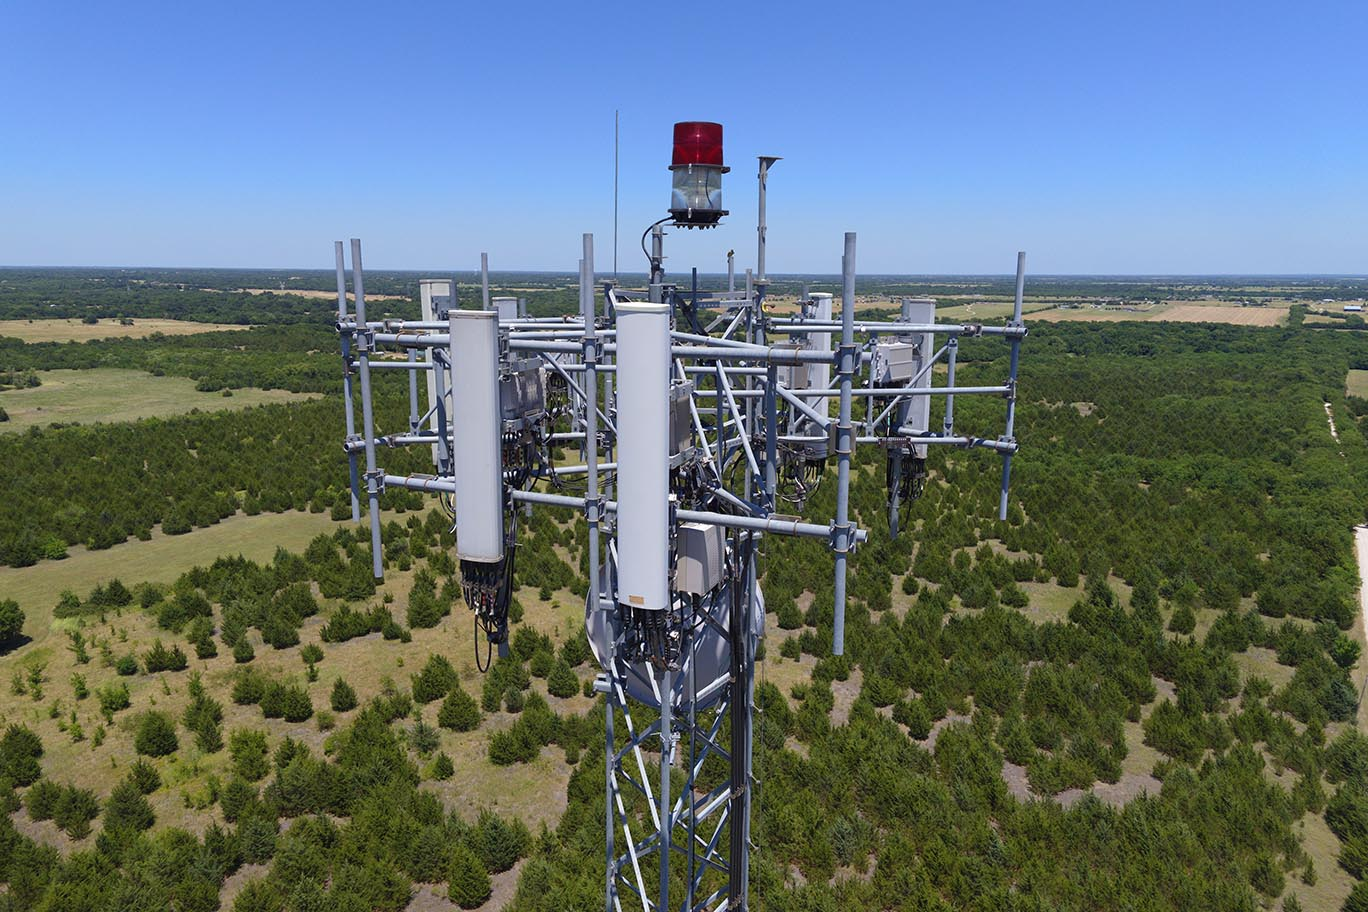 H520_Tower_Inspection_small.jpg